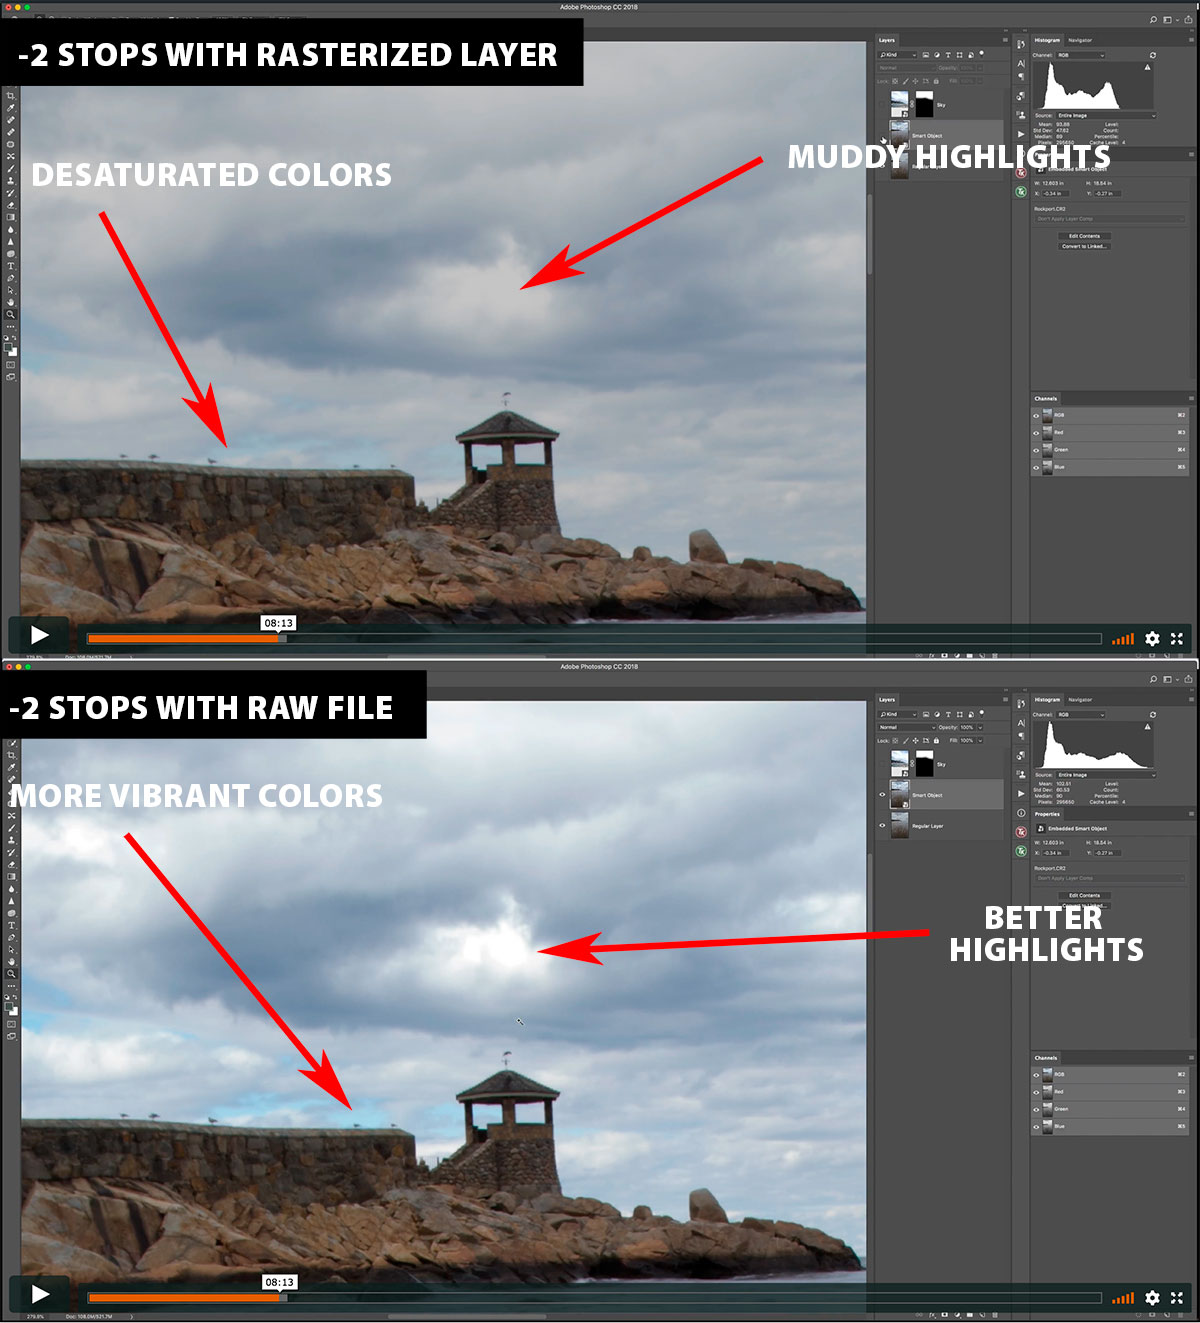 Comparing the quality difference between a smart object that is connected to a raw file, and a rasterized layer in Photoshop.